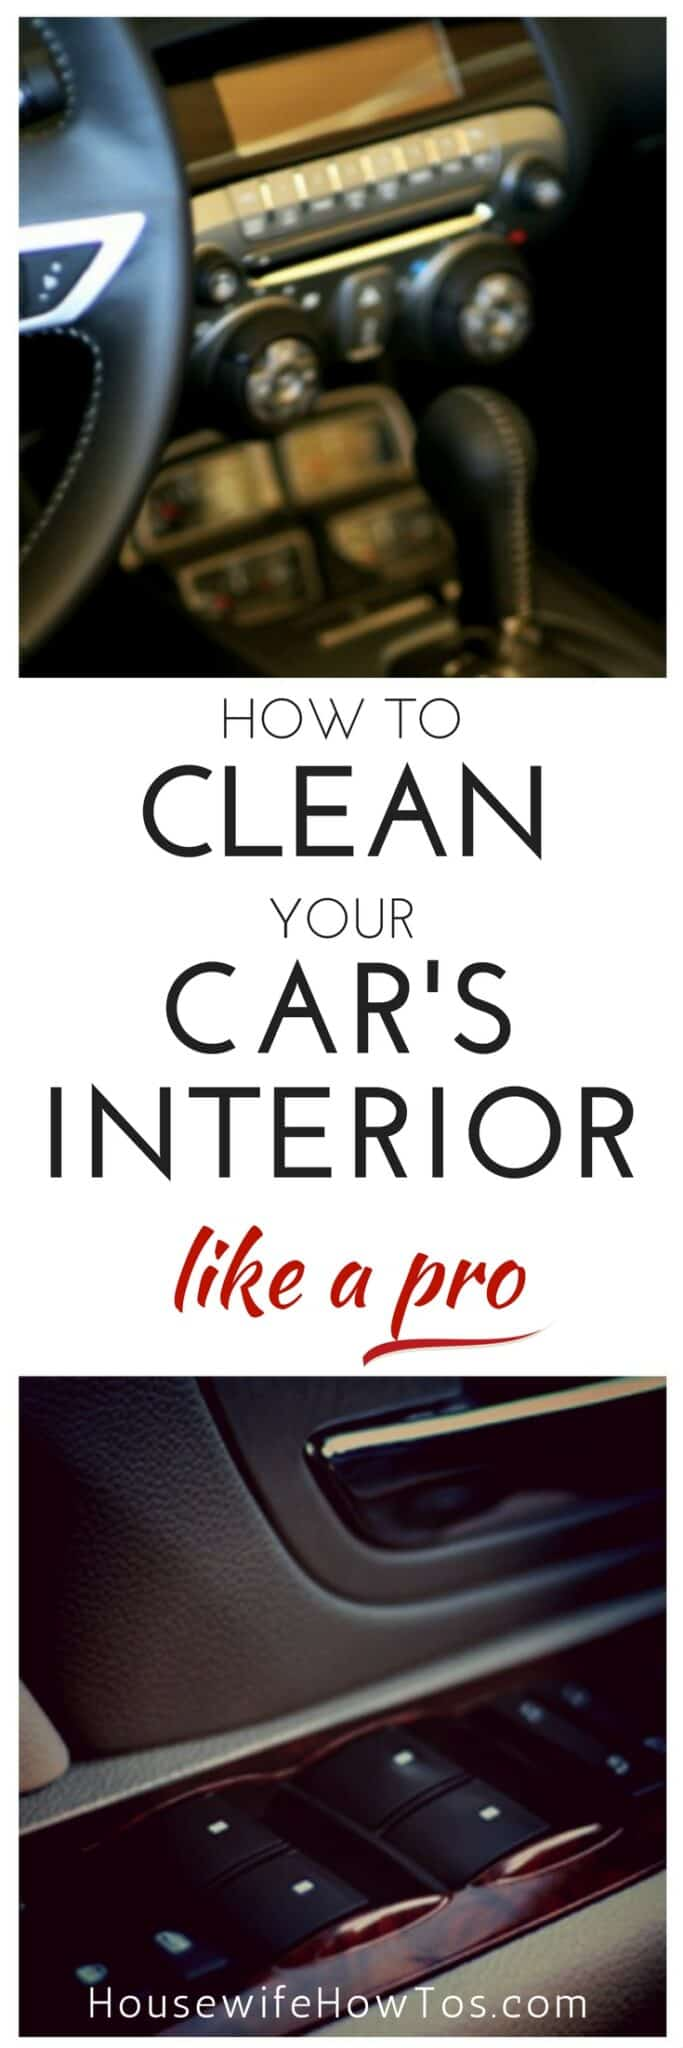 How To Clean Your Car's Interior Like A Pro | I save so much money doing this myself! #cleaningroutine #cleaninghacks #carcare #autocare #carcleaning #detailing